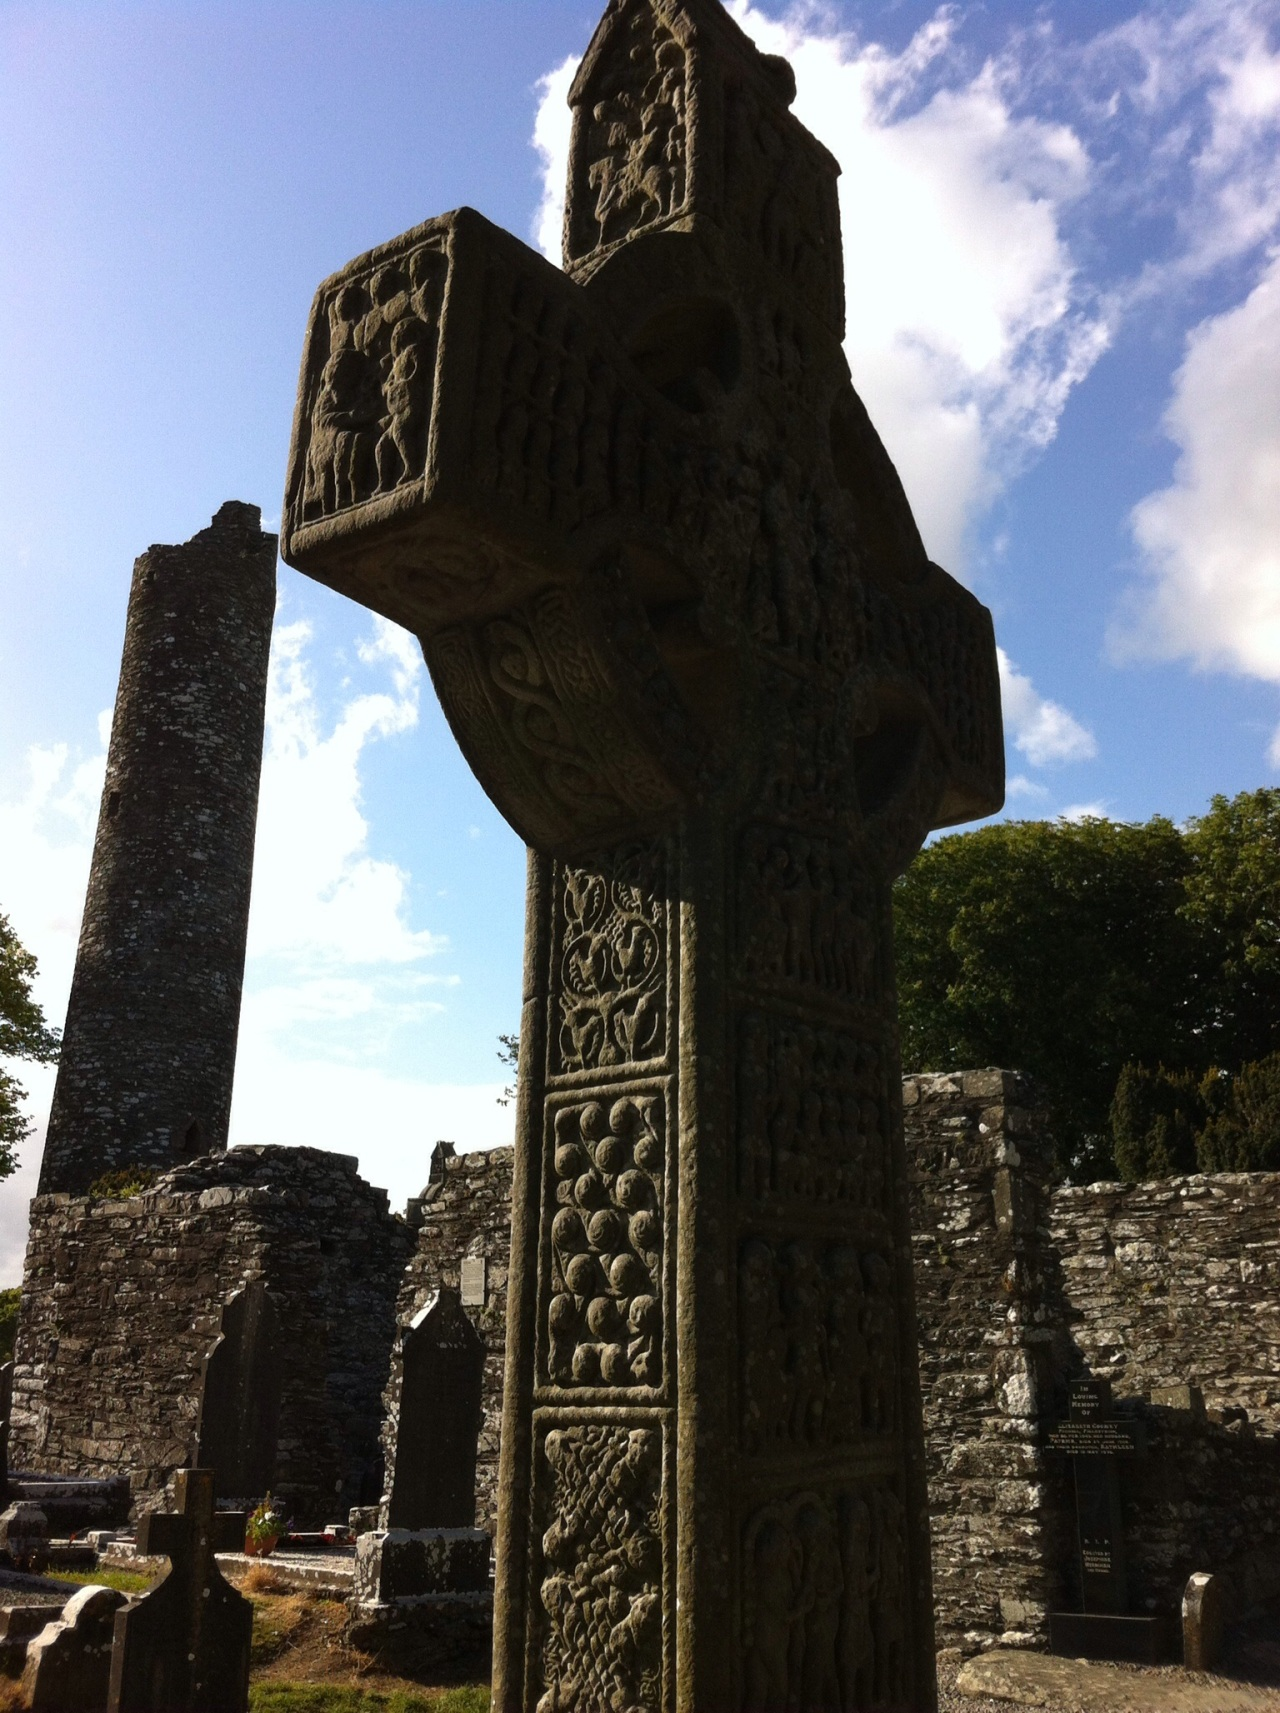 One of the stone crosses: Muiredach's Cross. [Photo by me, 2015.]